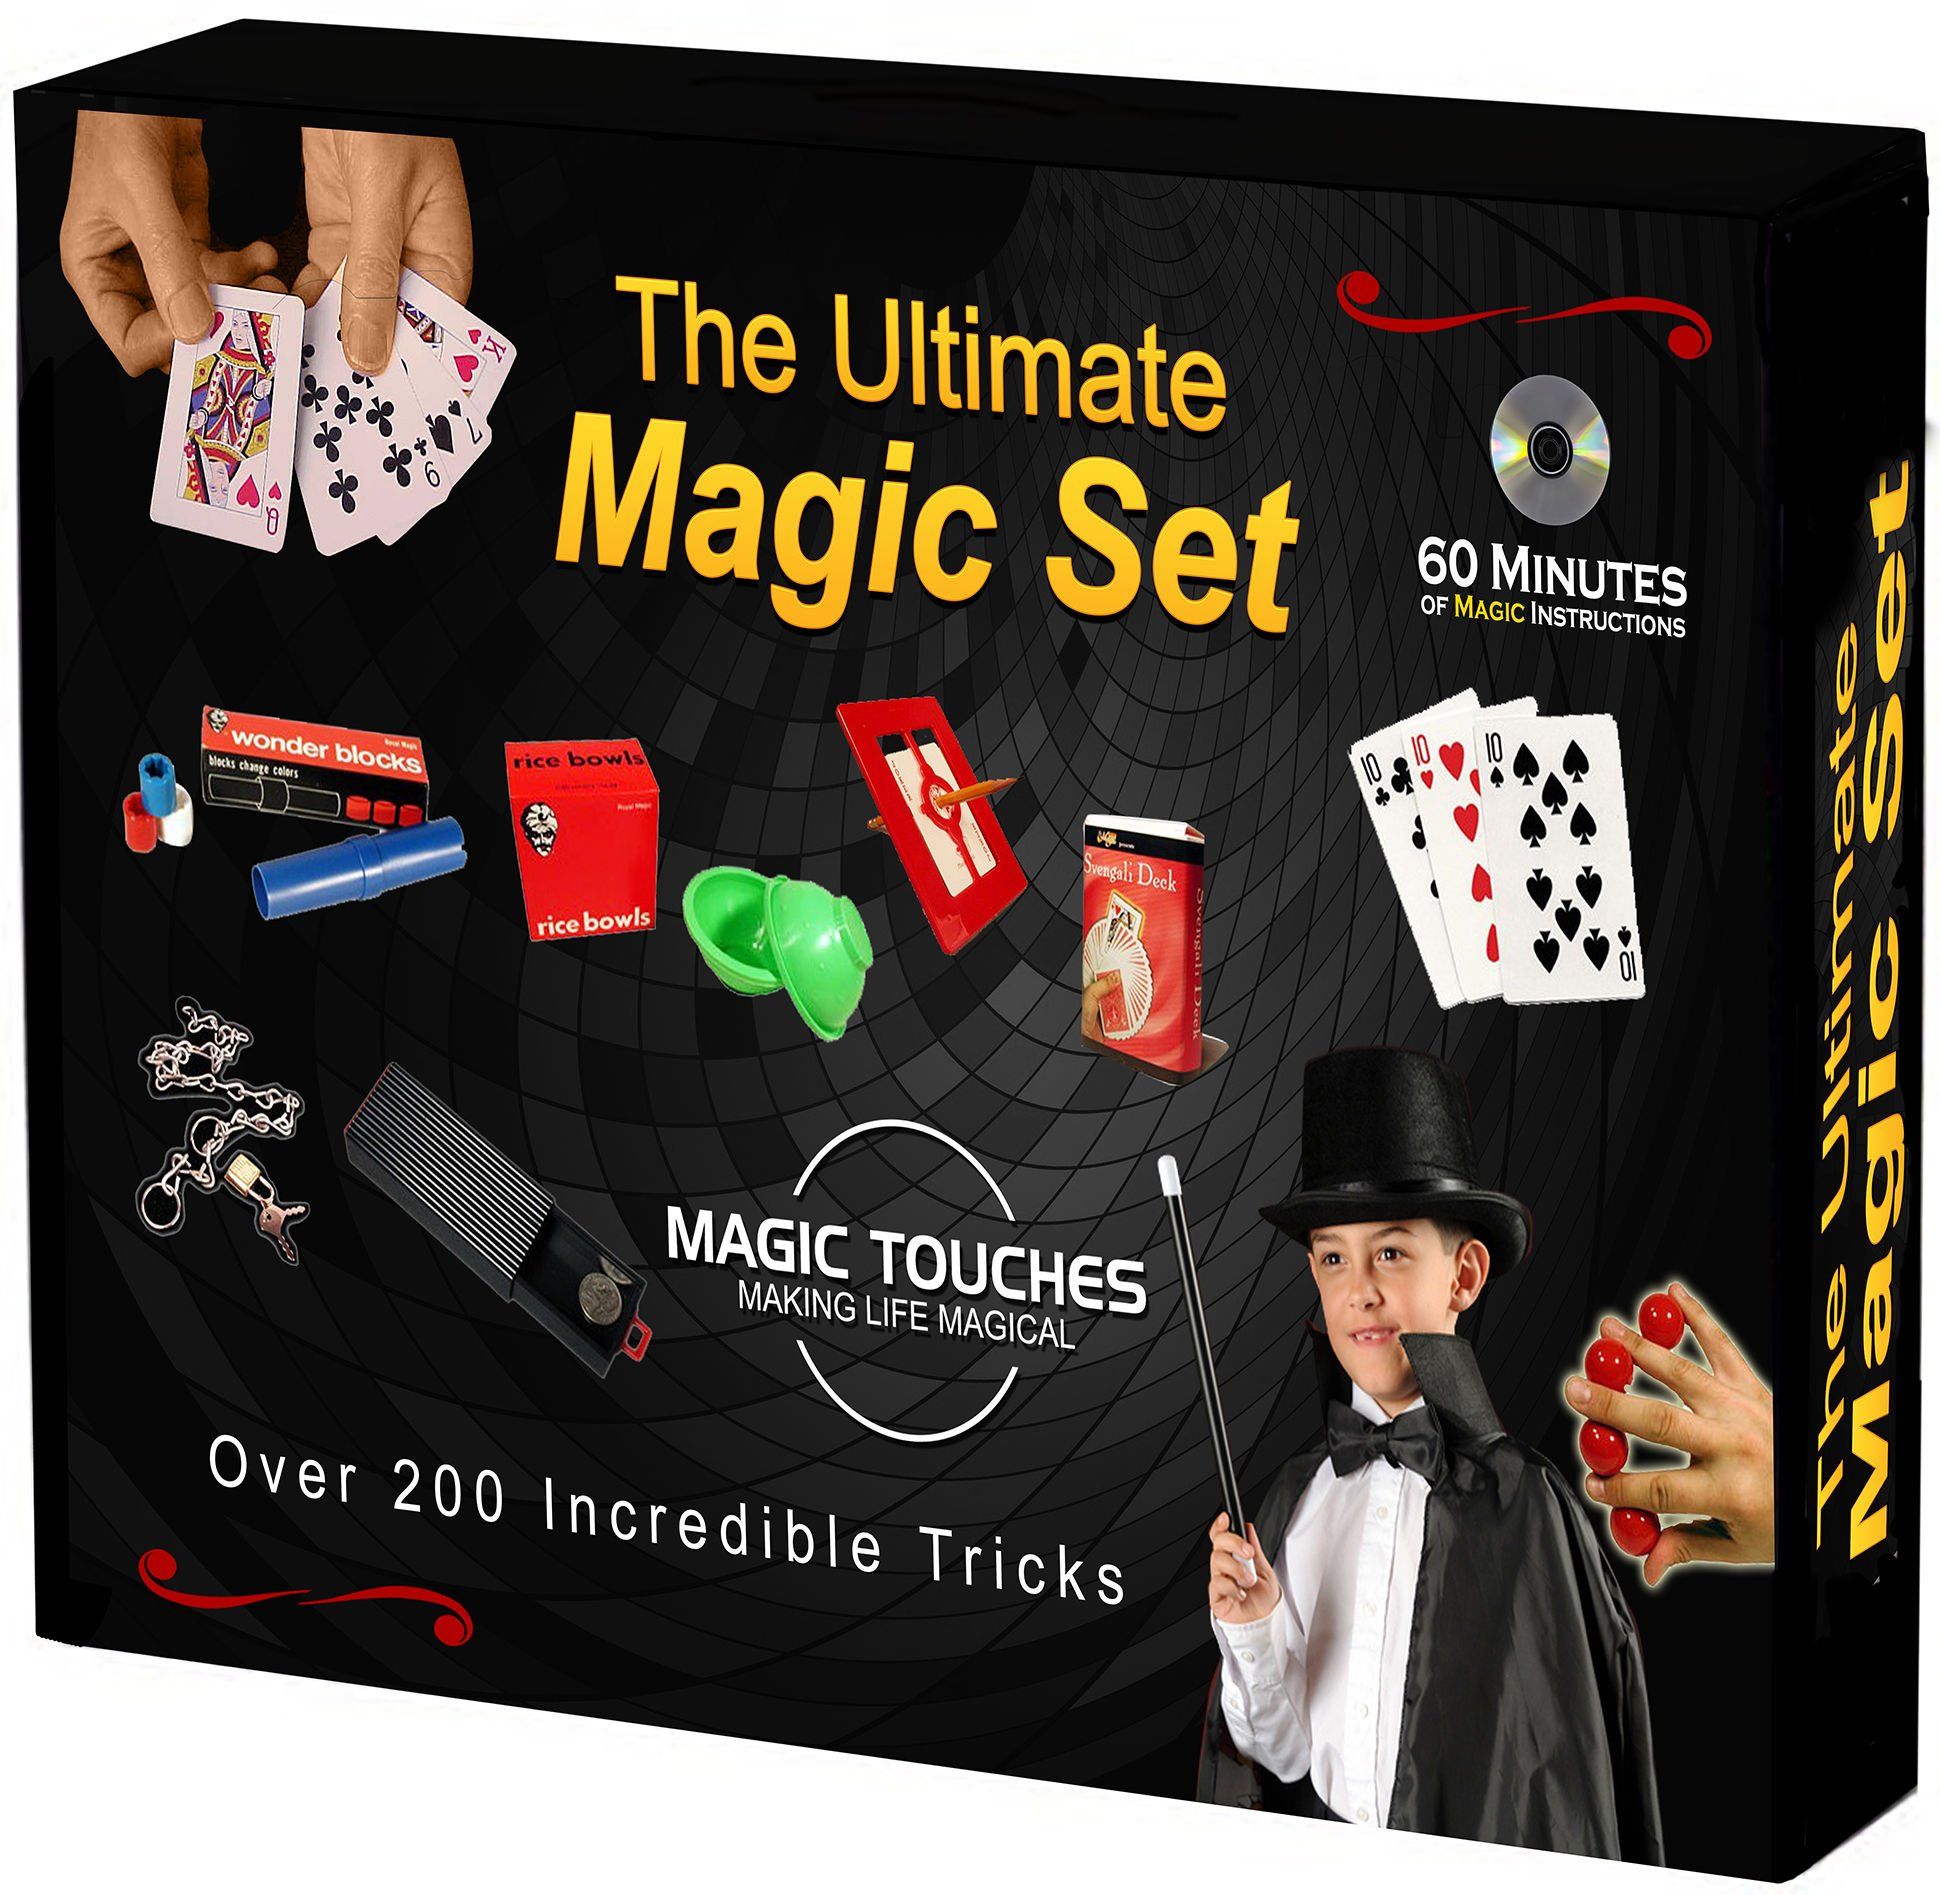 Magic Touches - Magic Tricks Set for Kids with Over 200 Tricks. Magic Kit Includes DVD Tutorial Explaining The Classics in The Kit by Magic Touches Making Life Magical